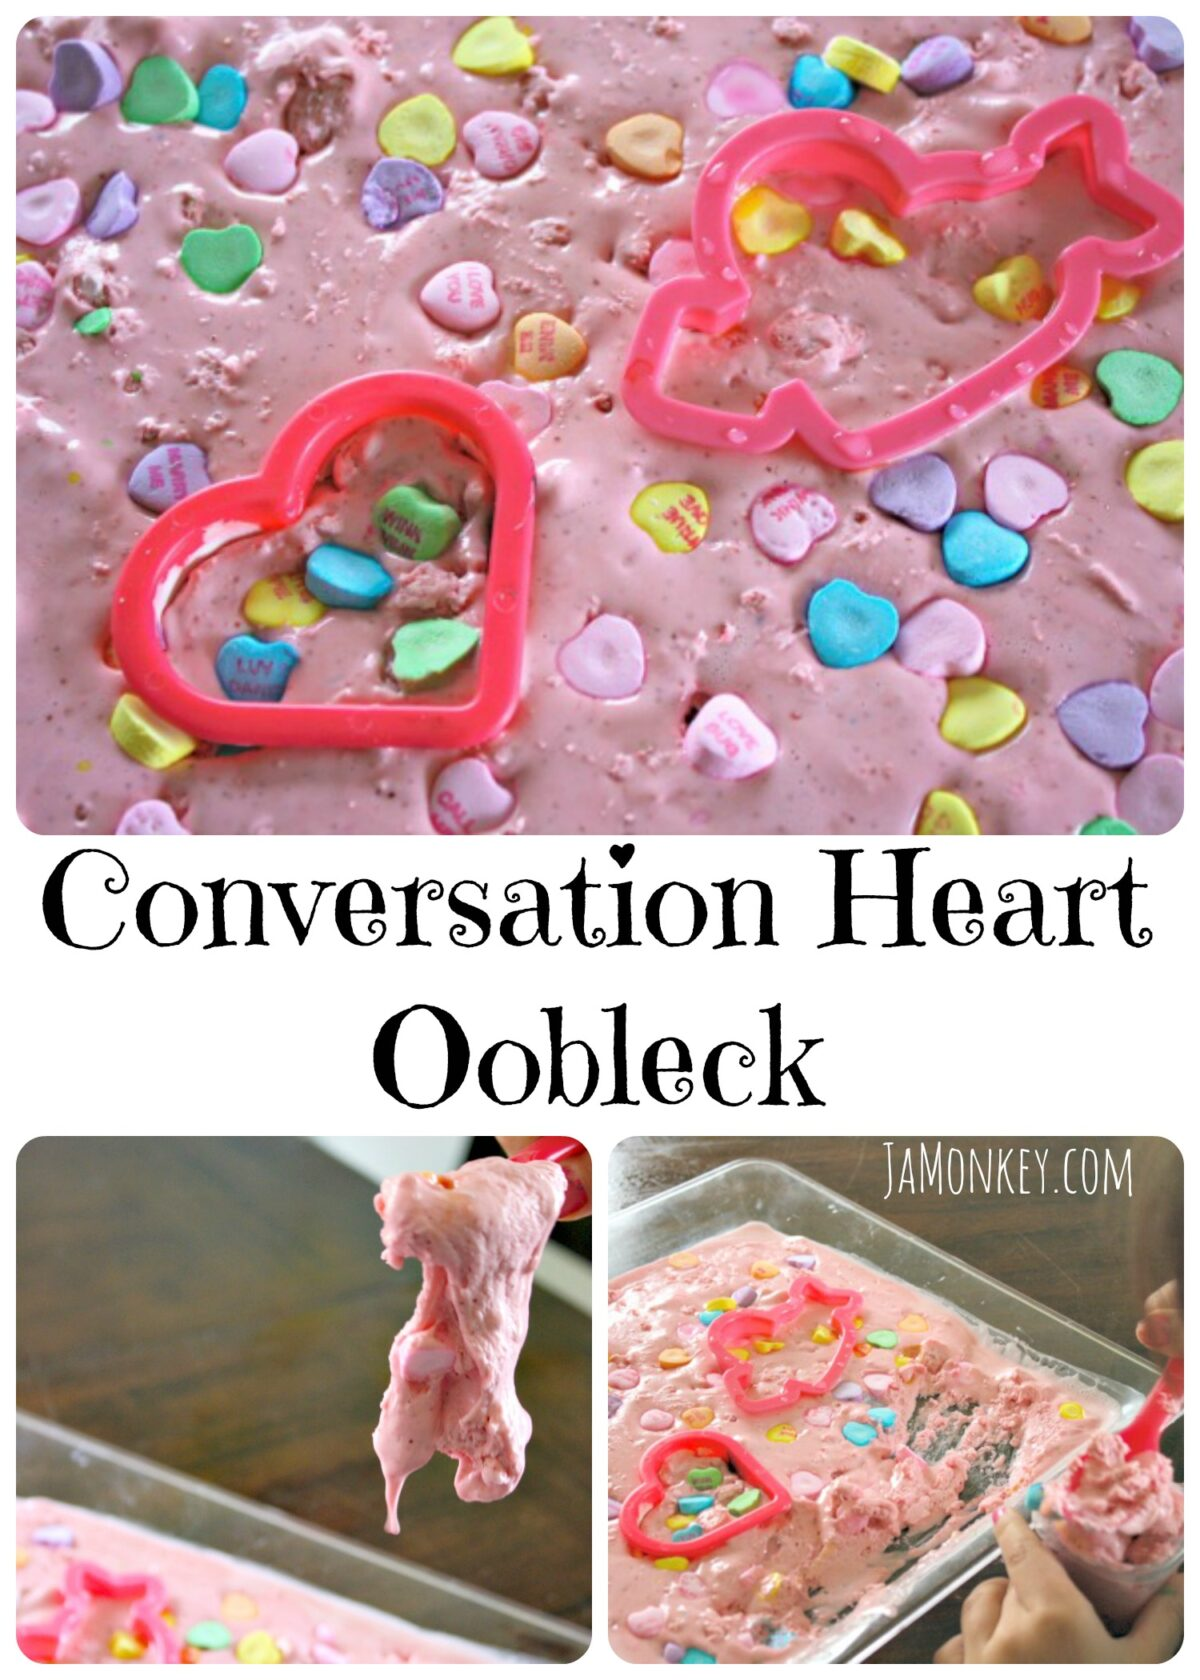 Conversation Heart Oobleck